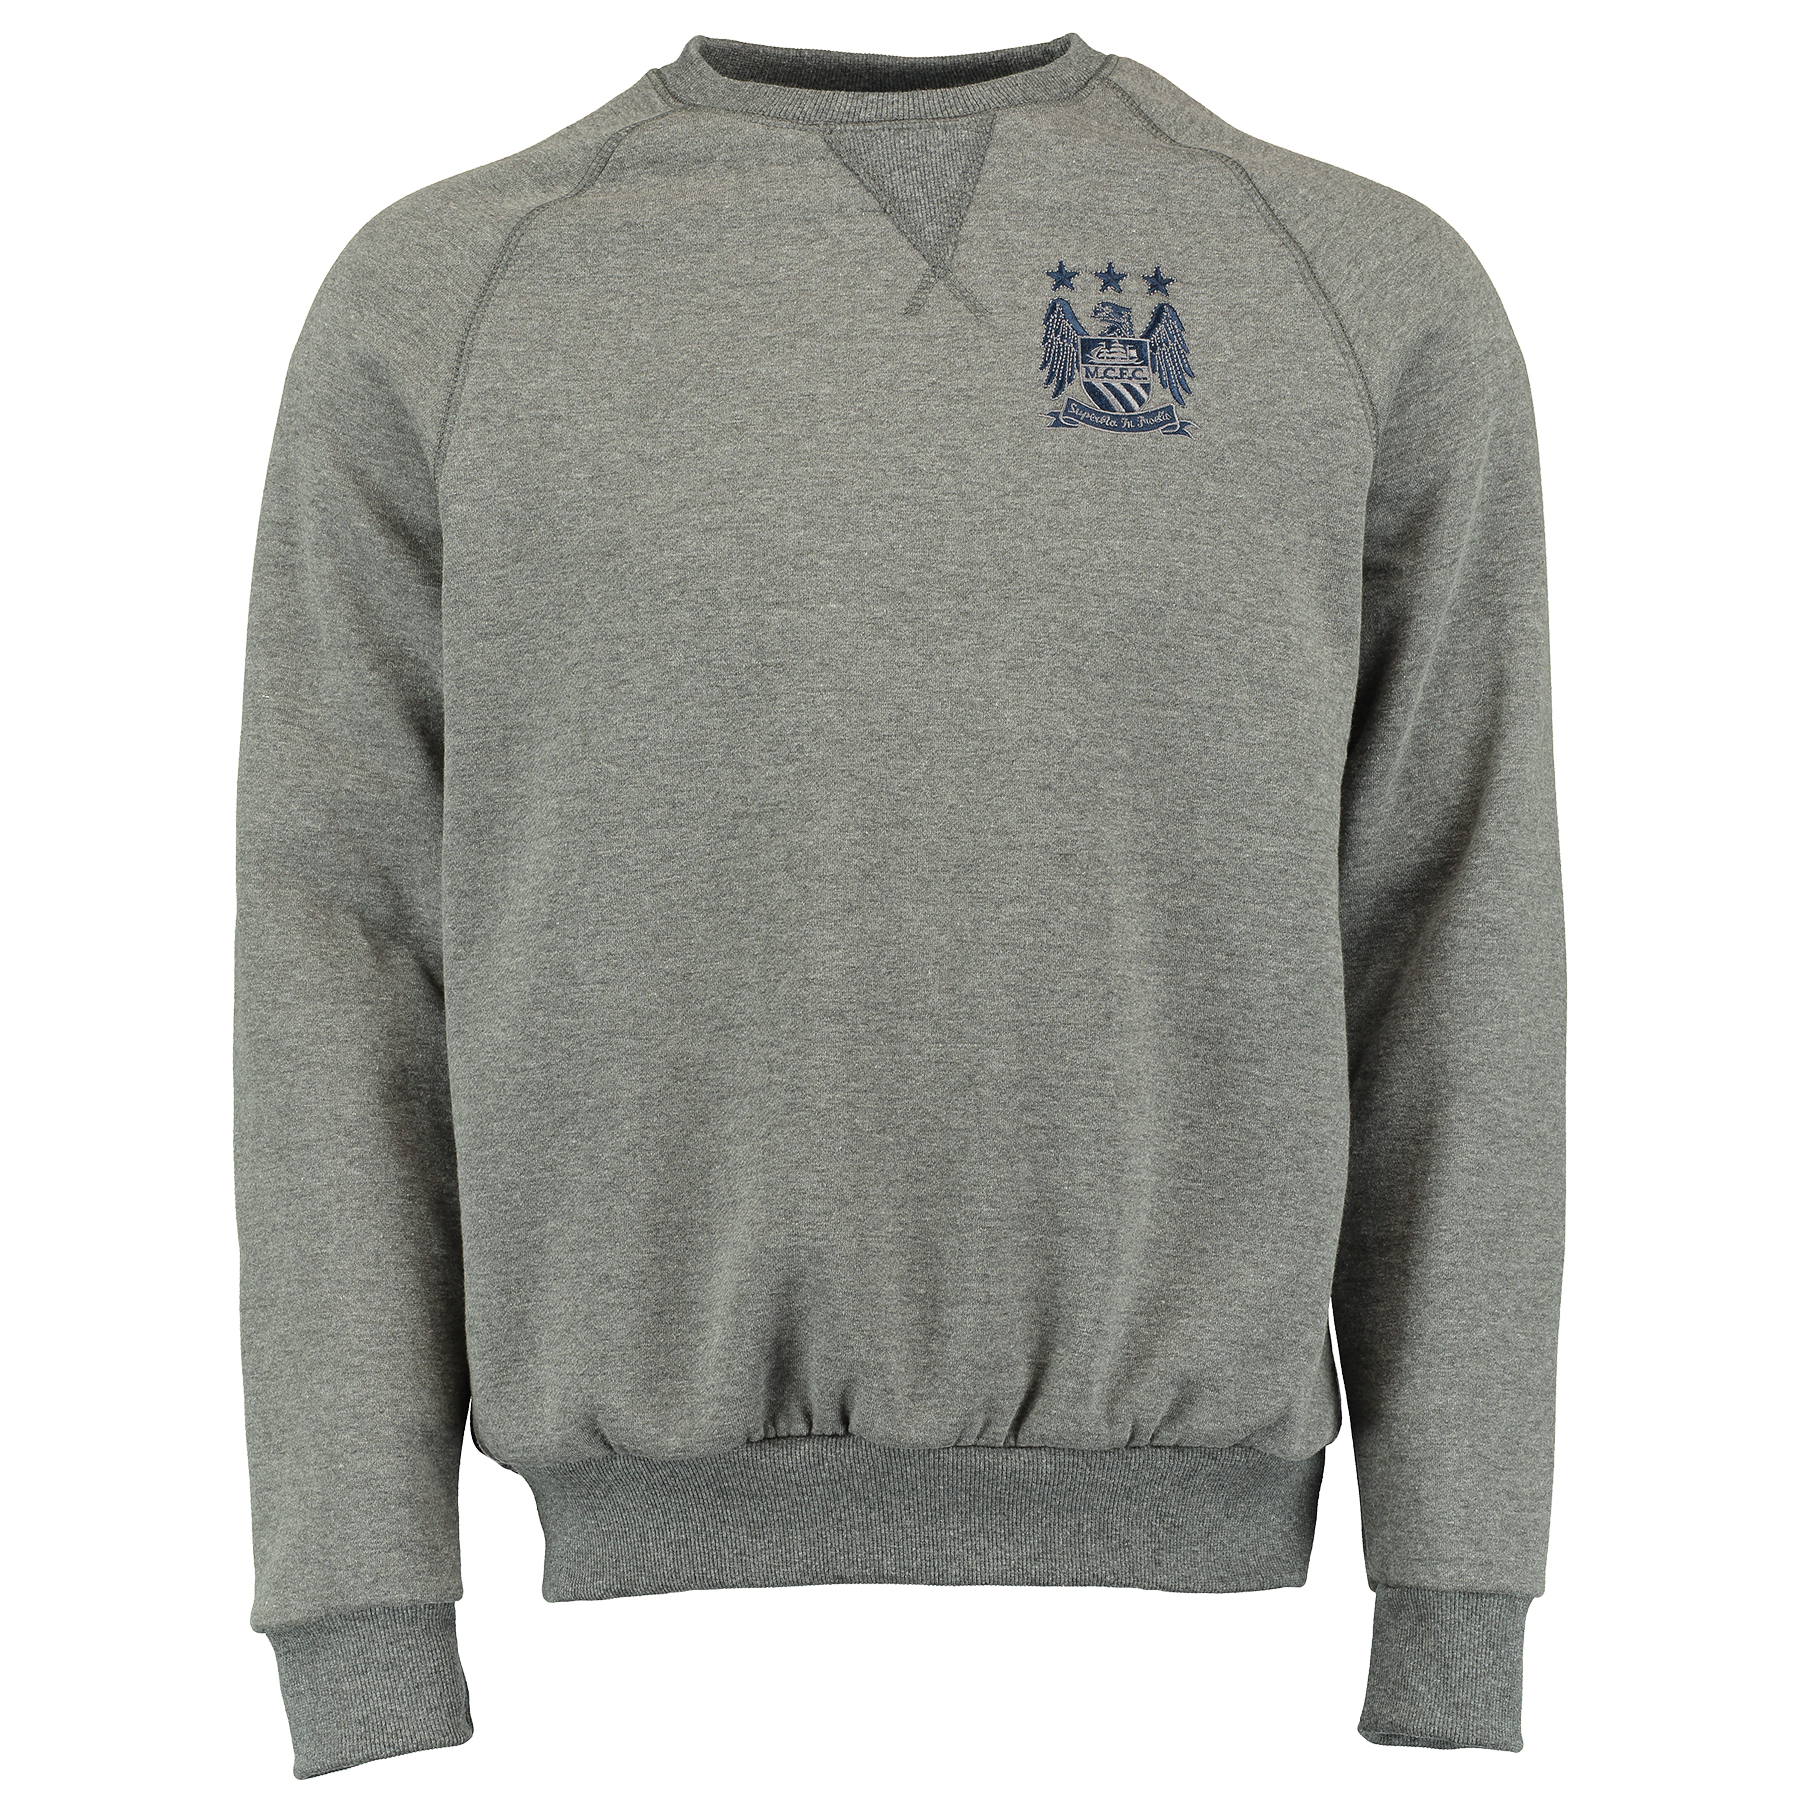 Manchester City Classic Crew Neck Sweater - Vintage Marl - Mens